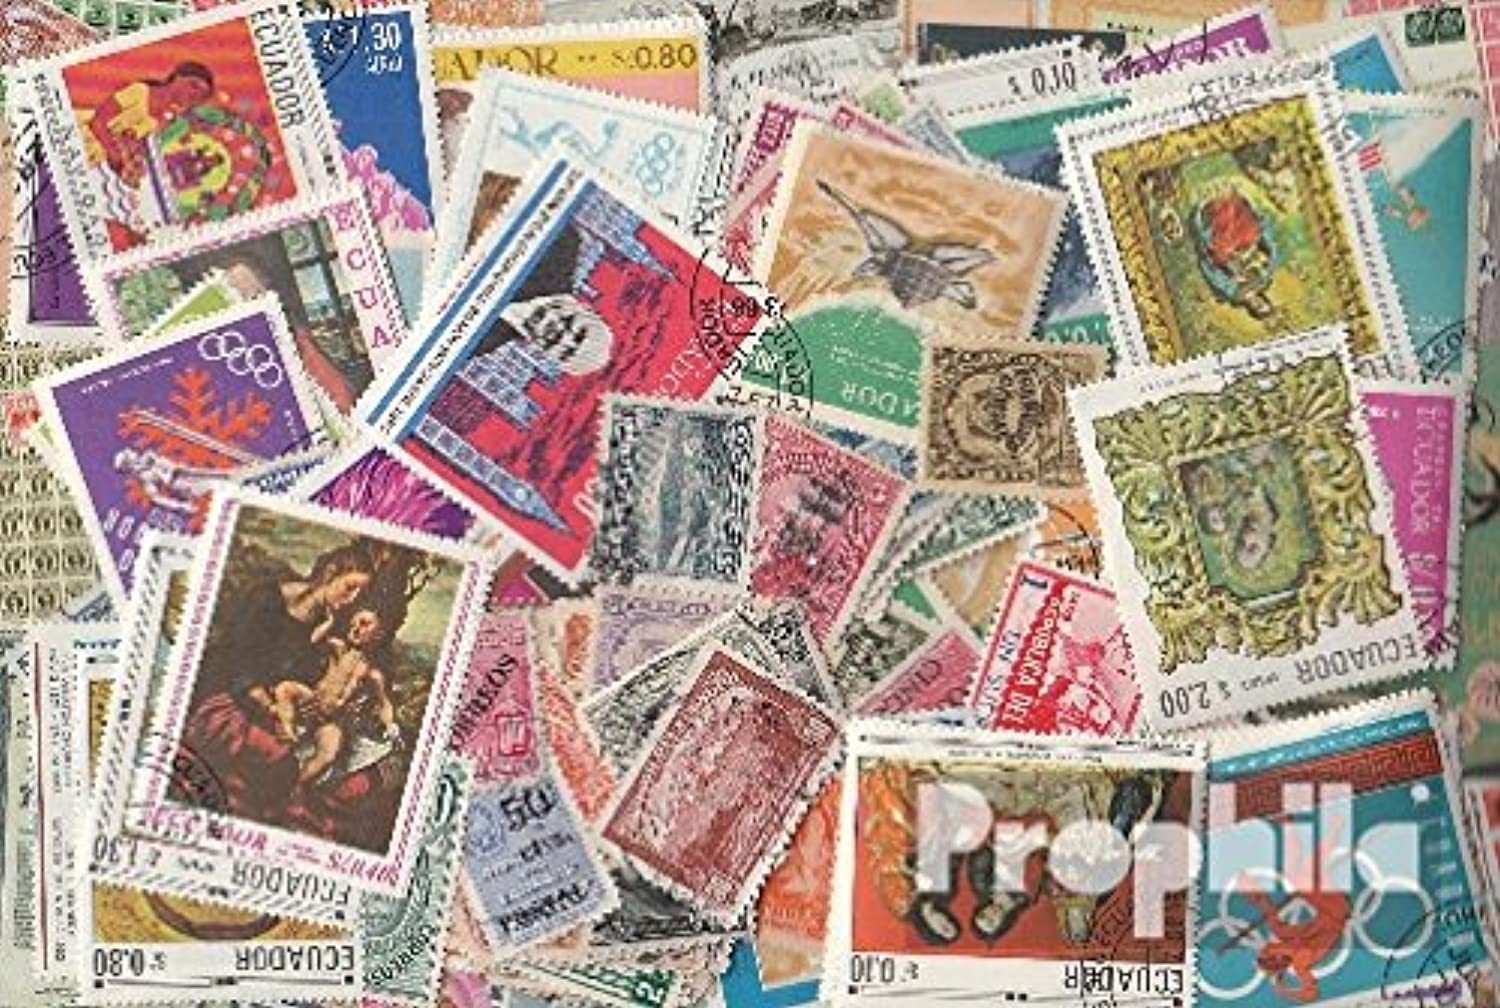 Ecuador 200 different stamps (Stamps for collectors)